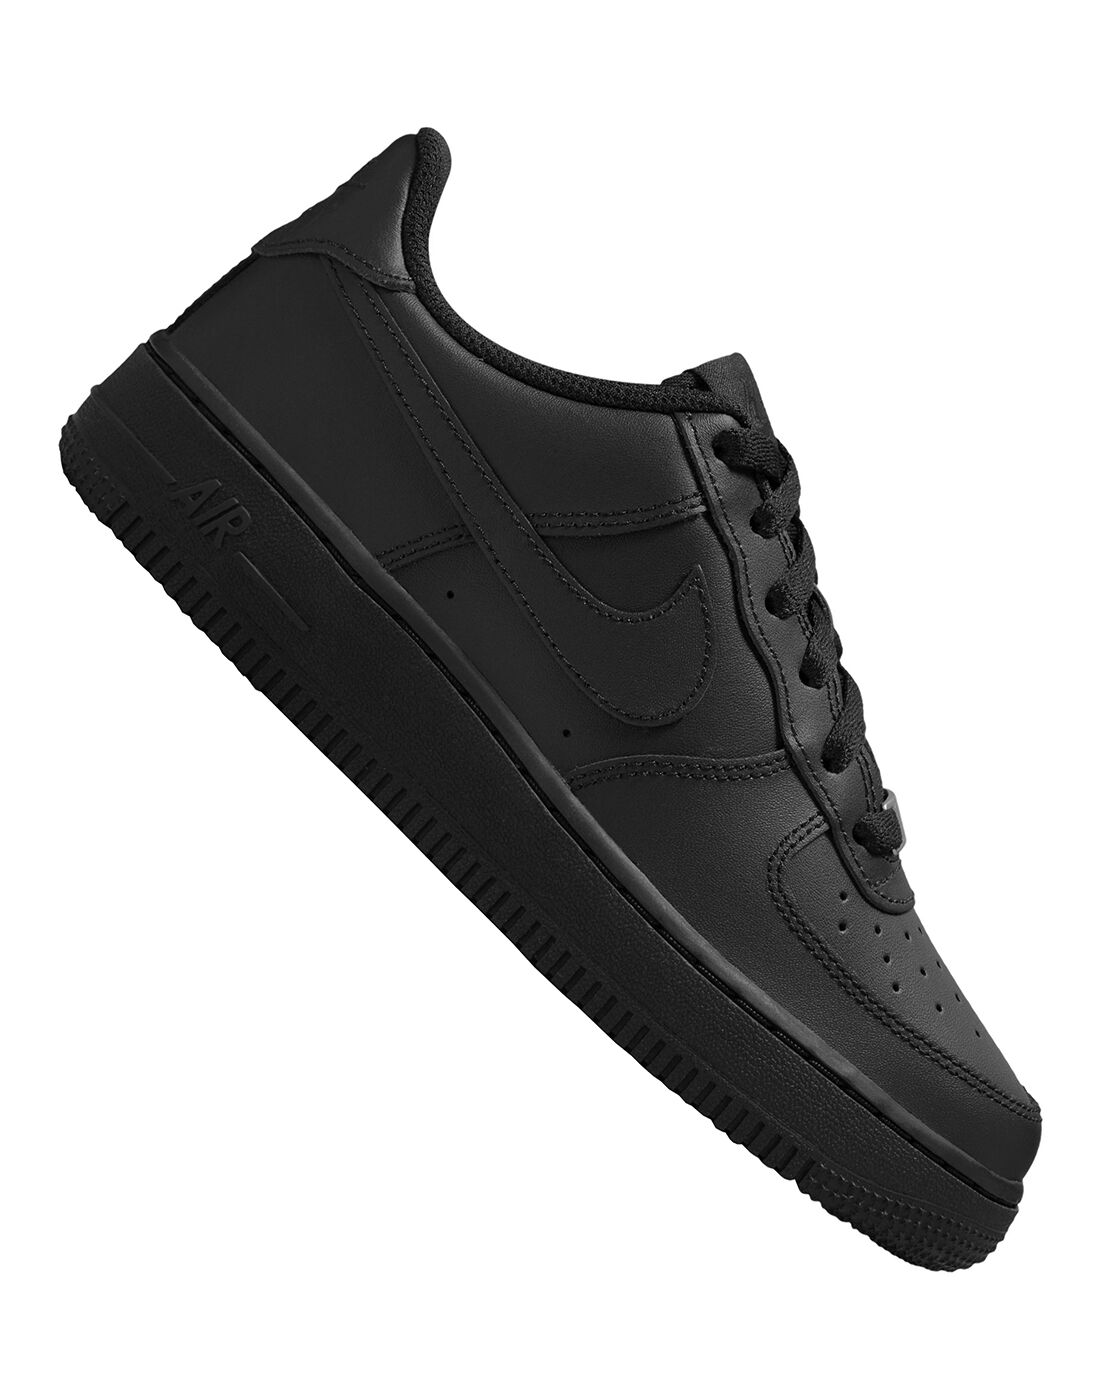 Nike chausson yeezy for sale free stuff for women | Older Kids blue adidas shoes foot locker store coupons